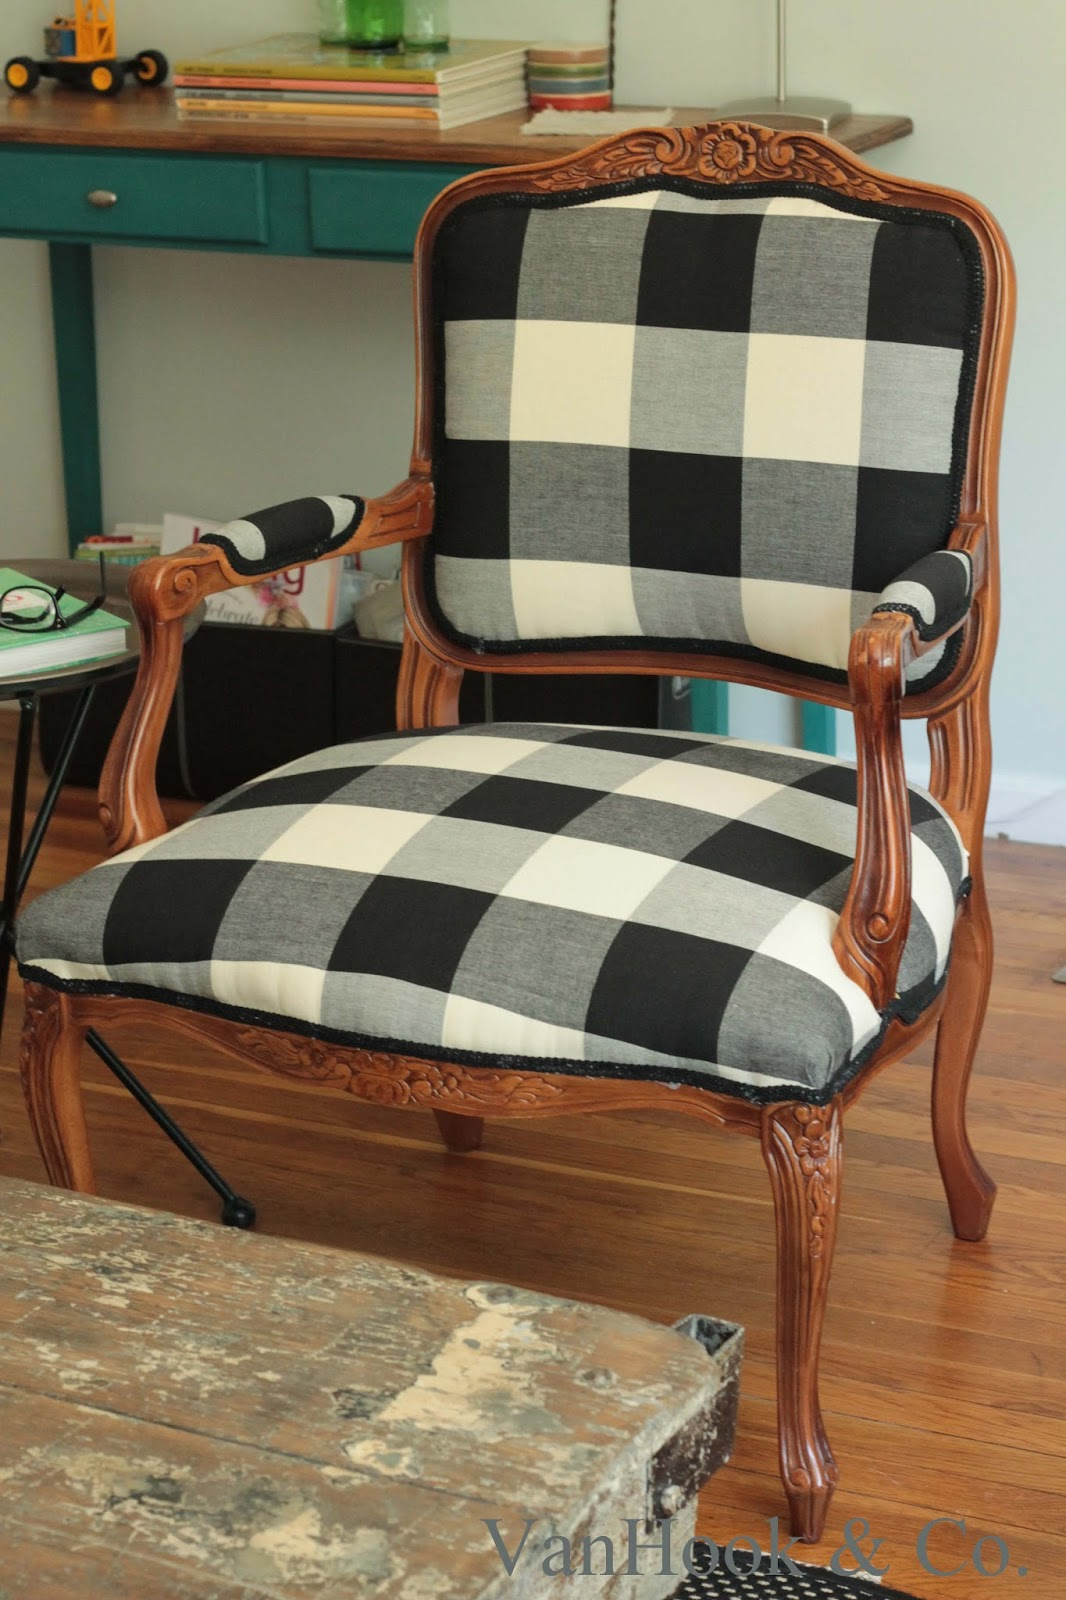 vanhook co how to reupholster a chair finished. Black Bedroom Furniture Sets. Home Design Ideas